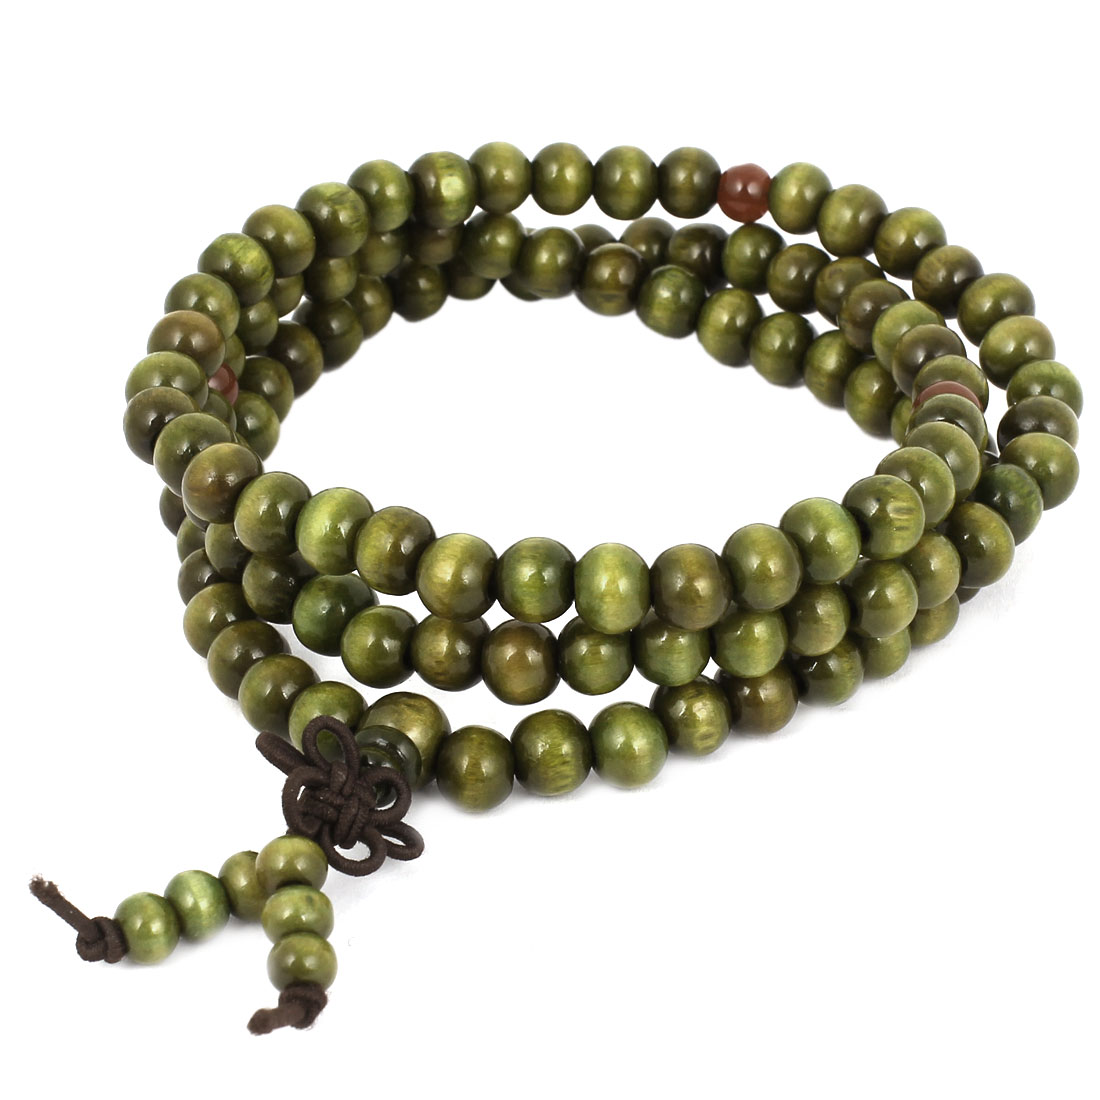 "30"" Long Army Green Plastic Elastic Beads Wrist Bracelet Necklace Decor for Woman"